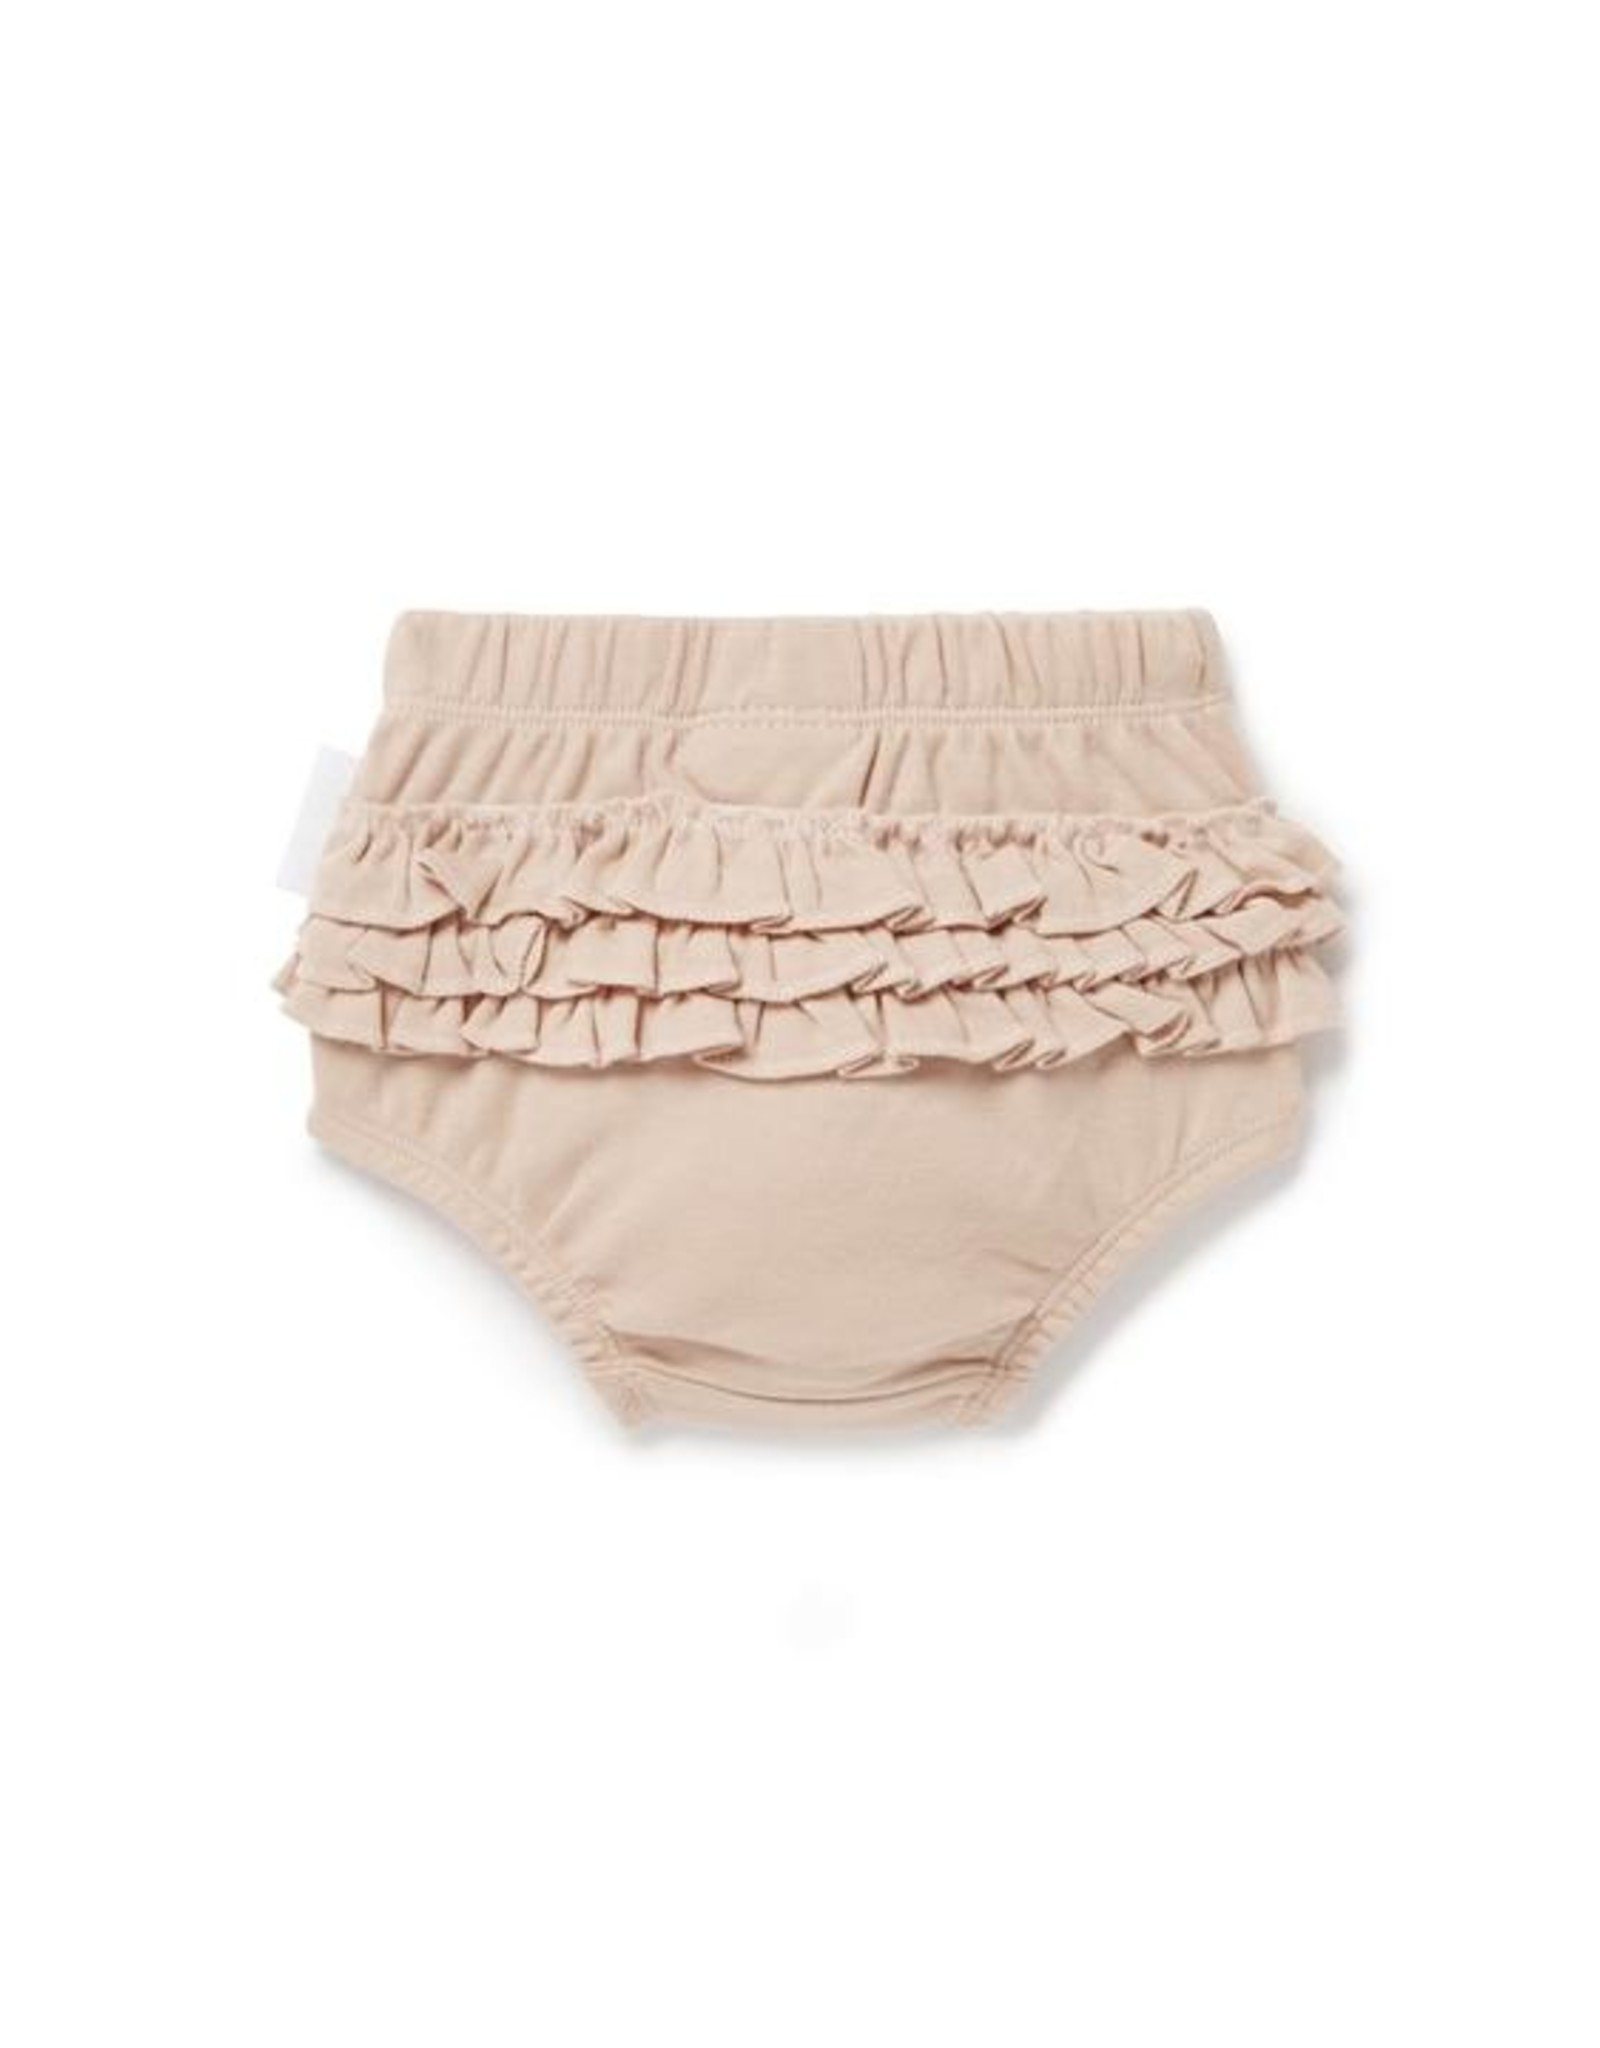 Aster & Oak Aster & Oak - Rose Dust Ruffle Bloomers